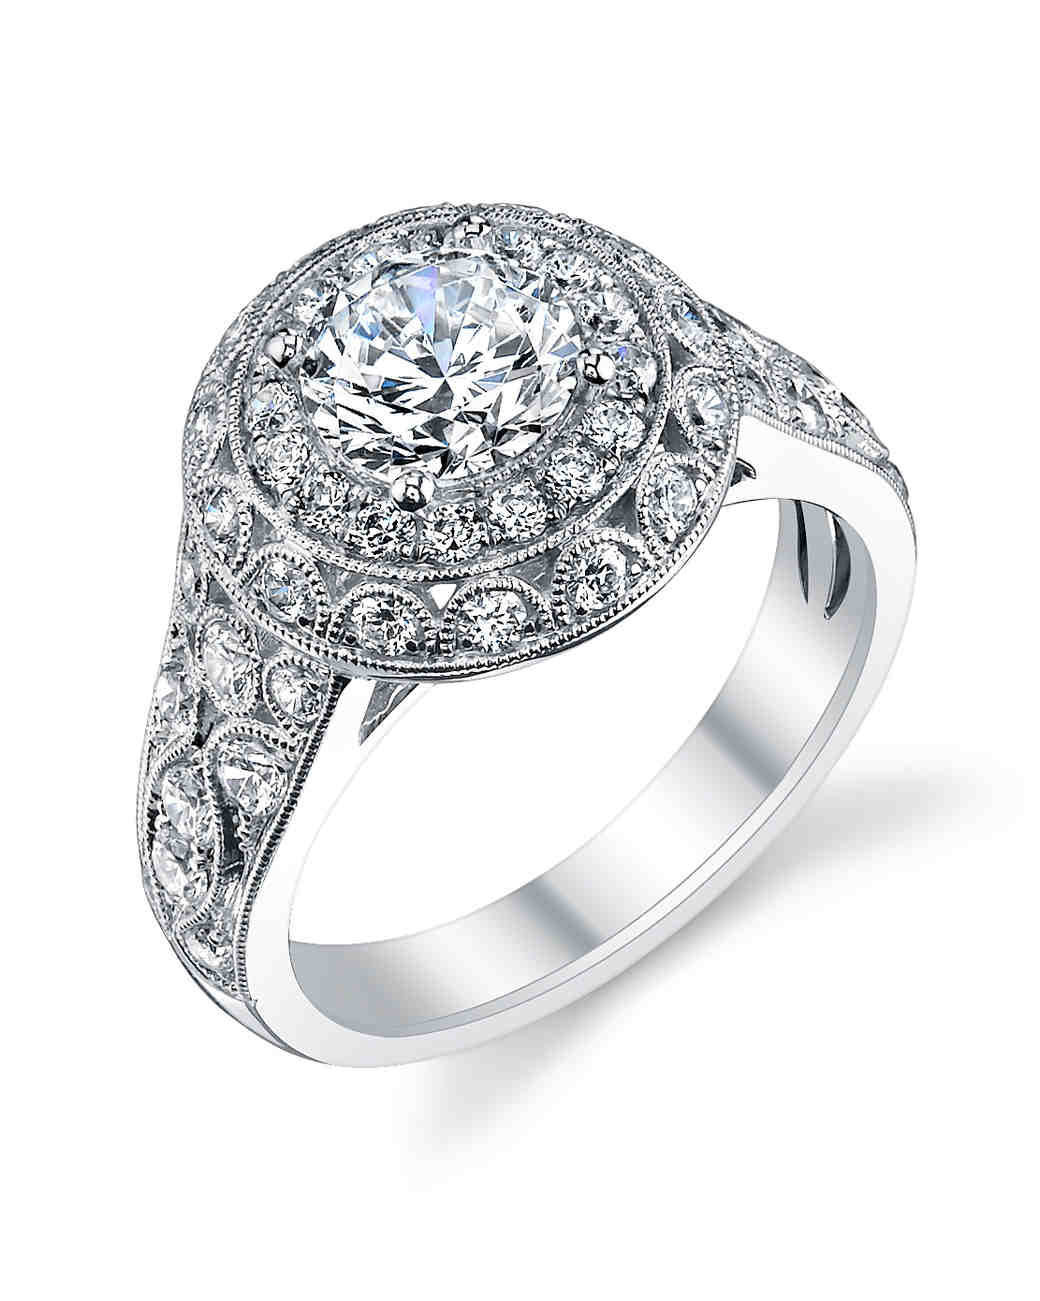 Sylvie Collection vintage-inspired white gold engagement ring with diamond shank